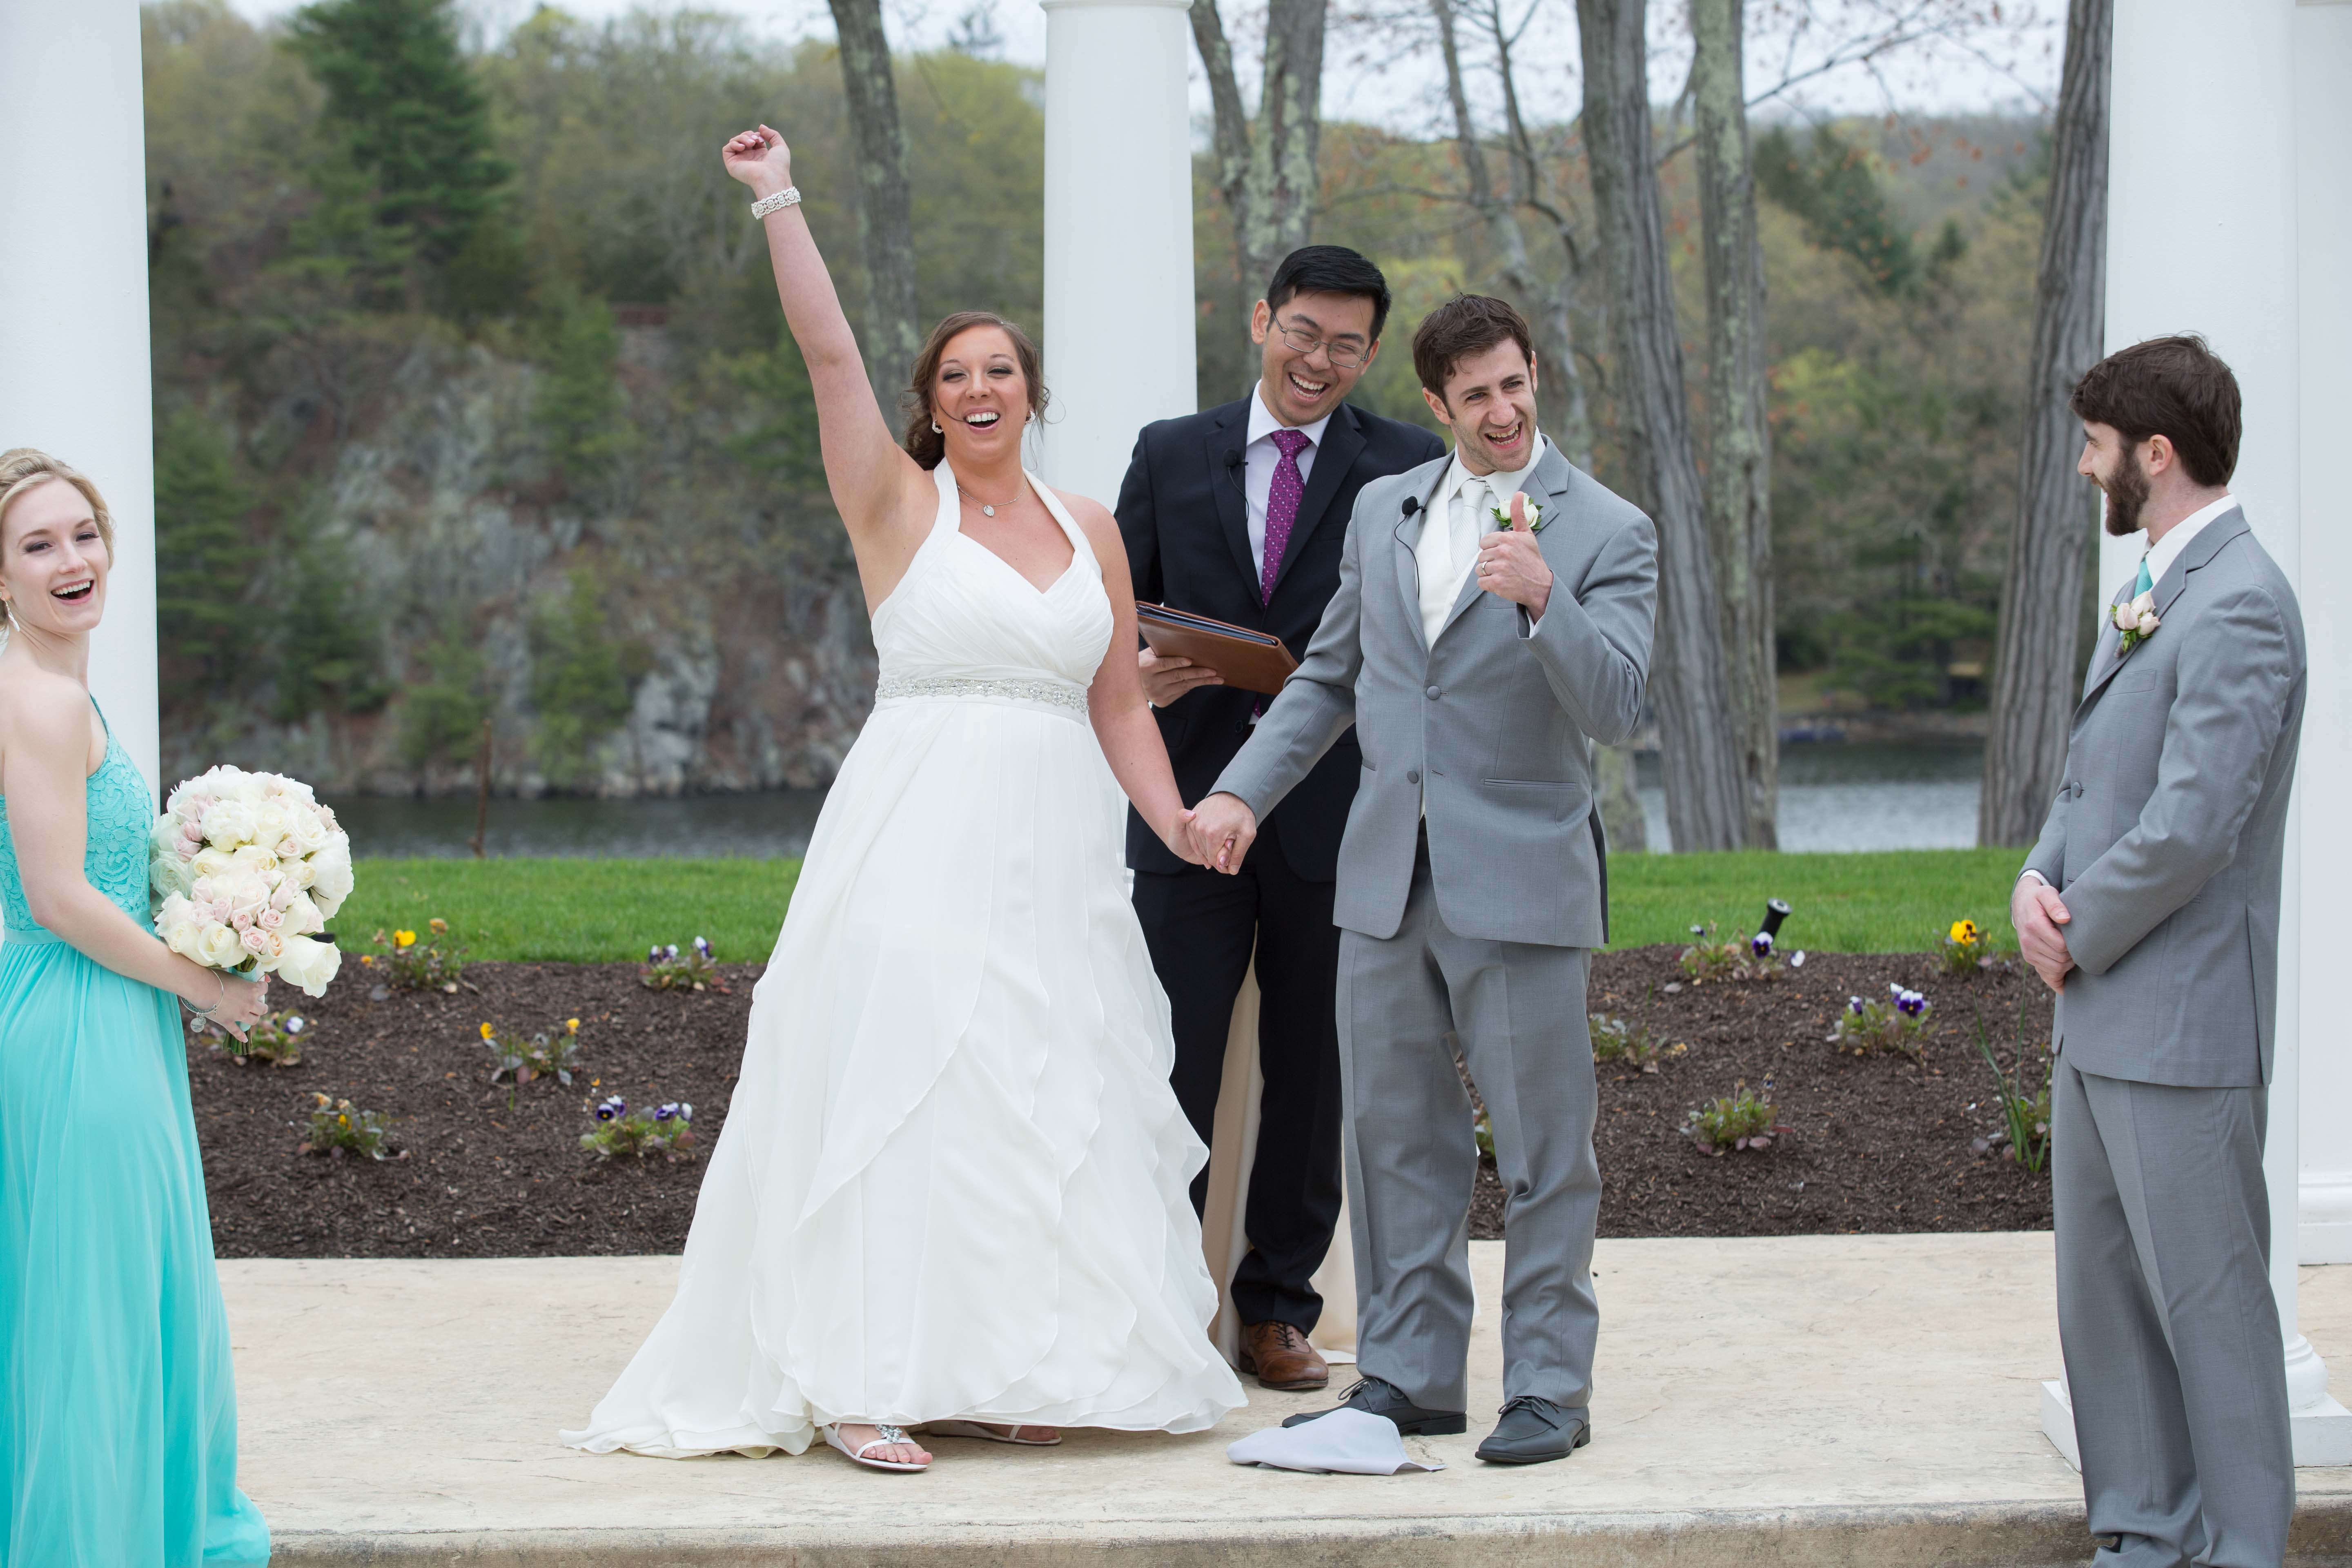 Wedding Ceremony at The Waterview Monroe CT - Wedding Photography by CT Photo Group